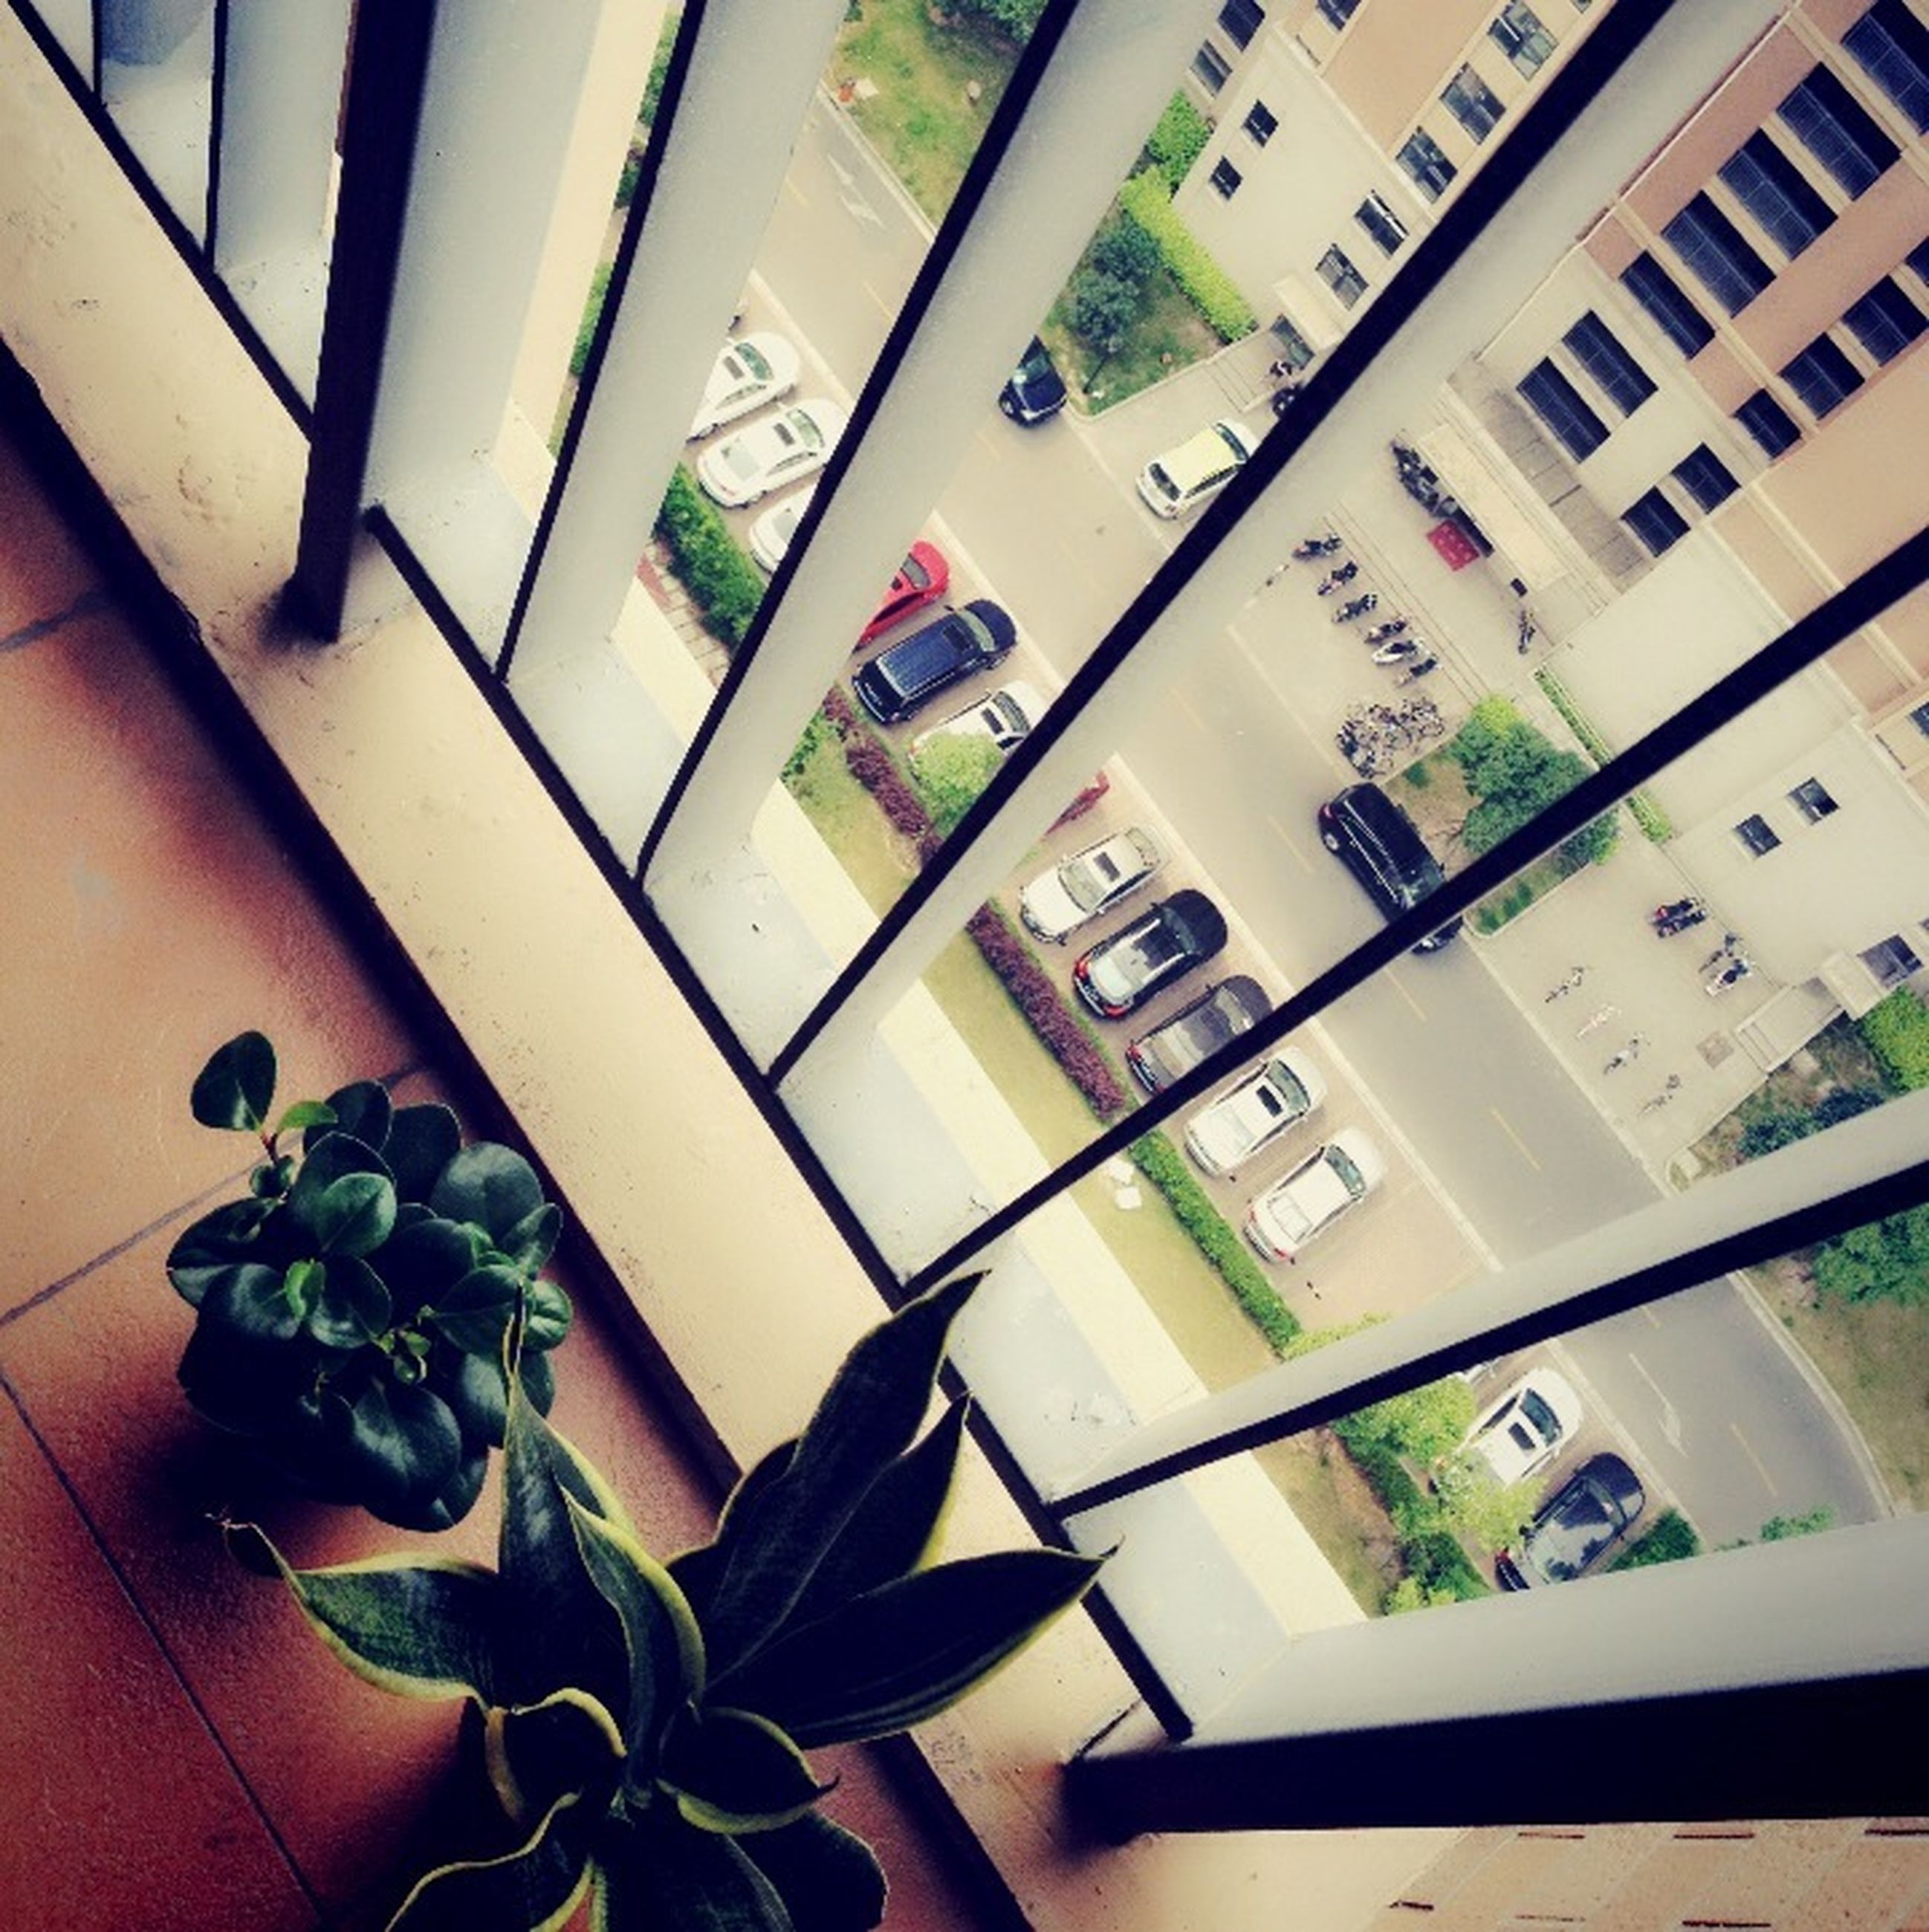 indoors, potted plant, window, high angle view, architecture, built structure, plant, house, no people, growth, building exterior, home interior, table, green color, day, sunlight, balcony, residential building, wall, door